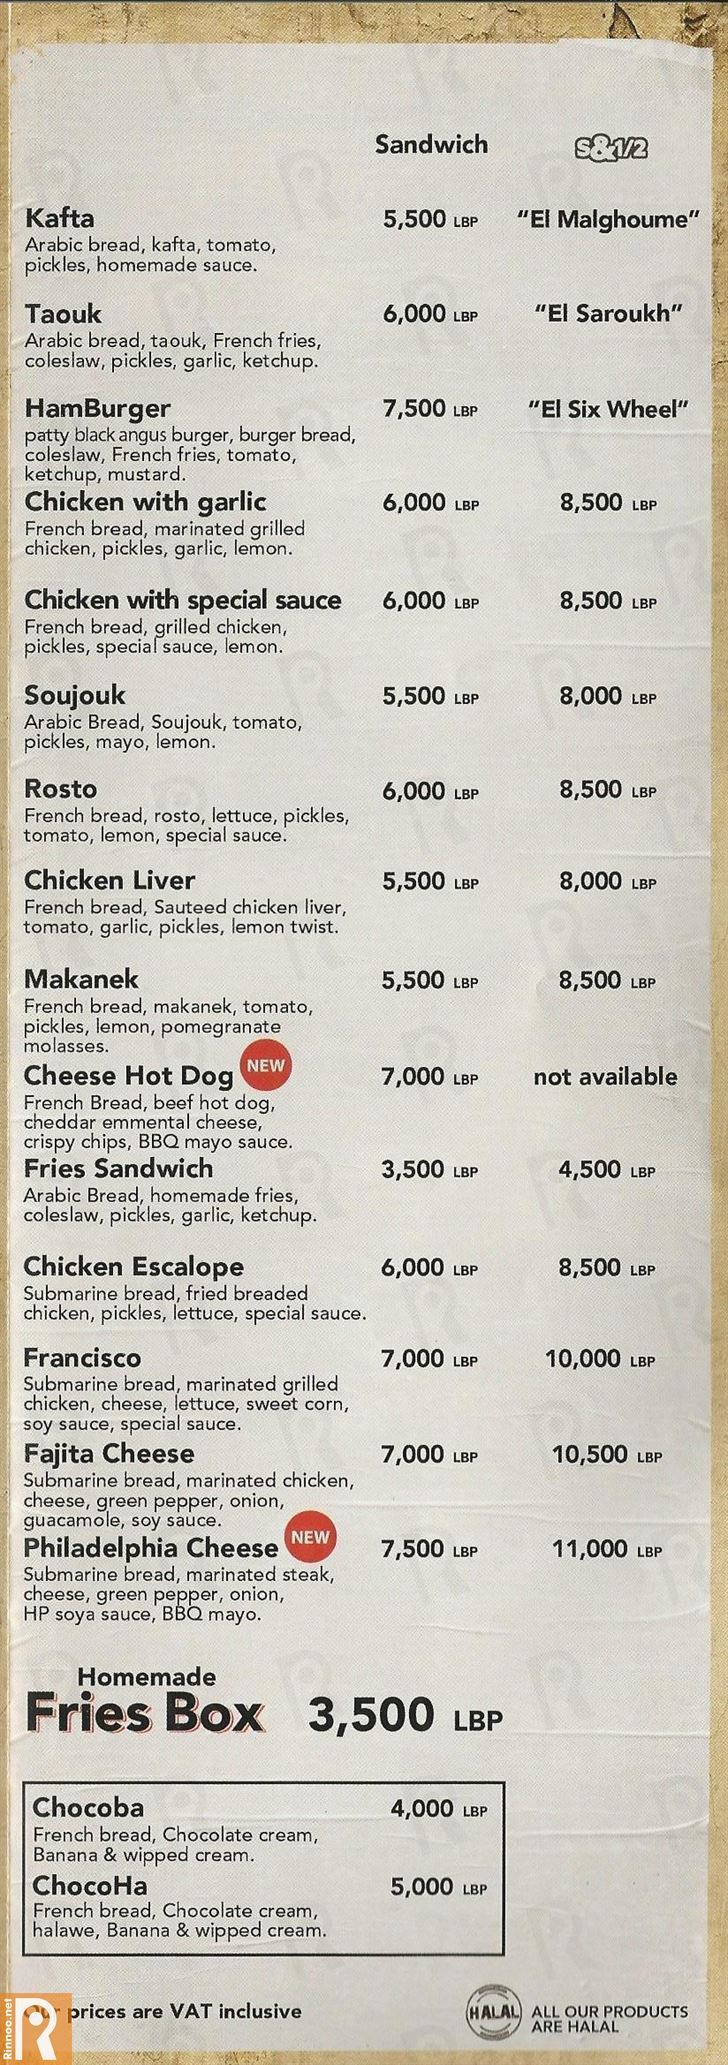 Sandwich W Noss Restaurant Menu and Meals Prices